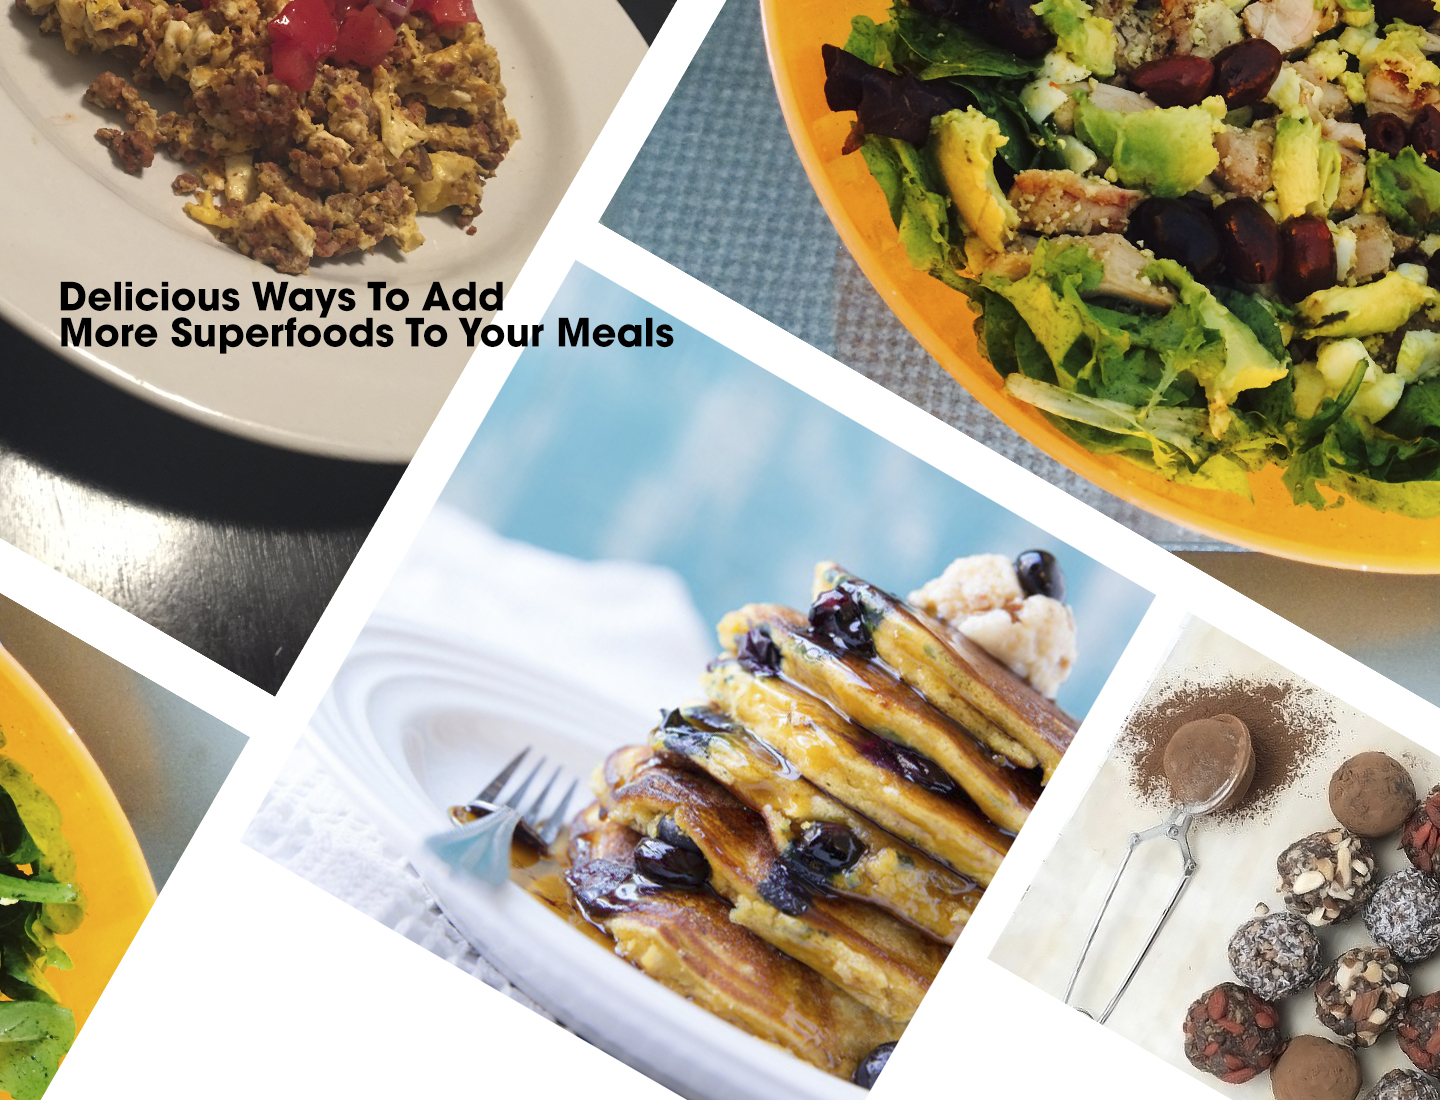 Jqykrcflljlosvtrxq cjpgopahh0xqzcvibwoiasfxyirgeotsoqpkgl1cqhfpqjfiuoqw6okgpnzkx16as0 free recipe book revels simple and delicious ways to use some of the world healthiest foods chili breakfast scramble protein pancakes and much more forumfinder Image collections